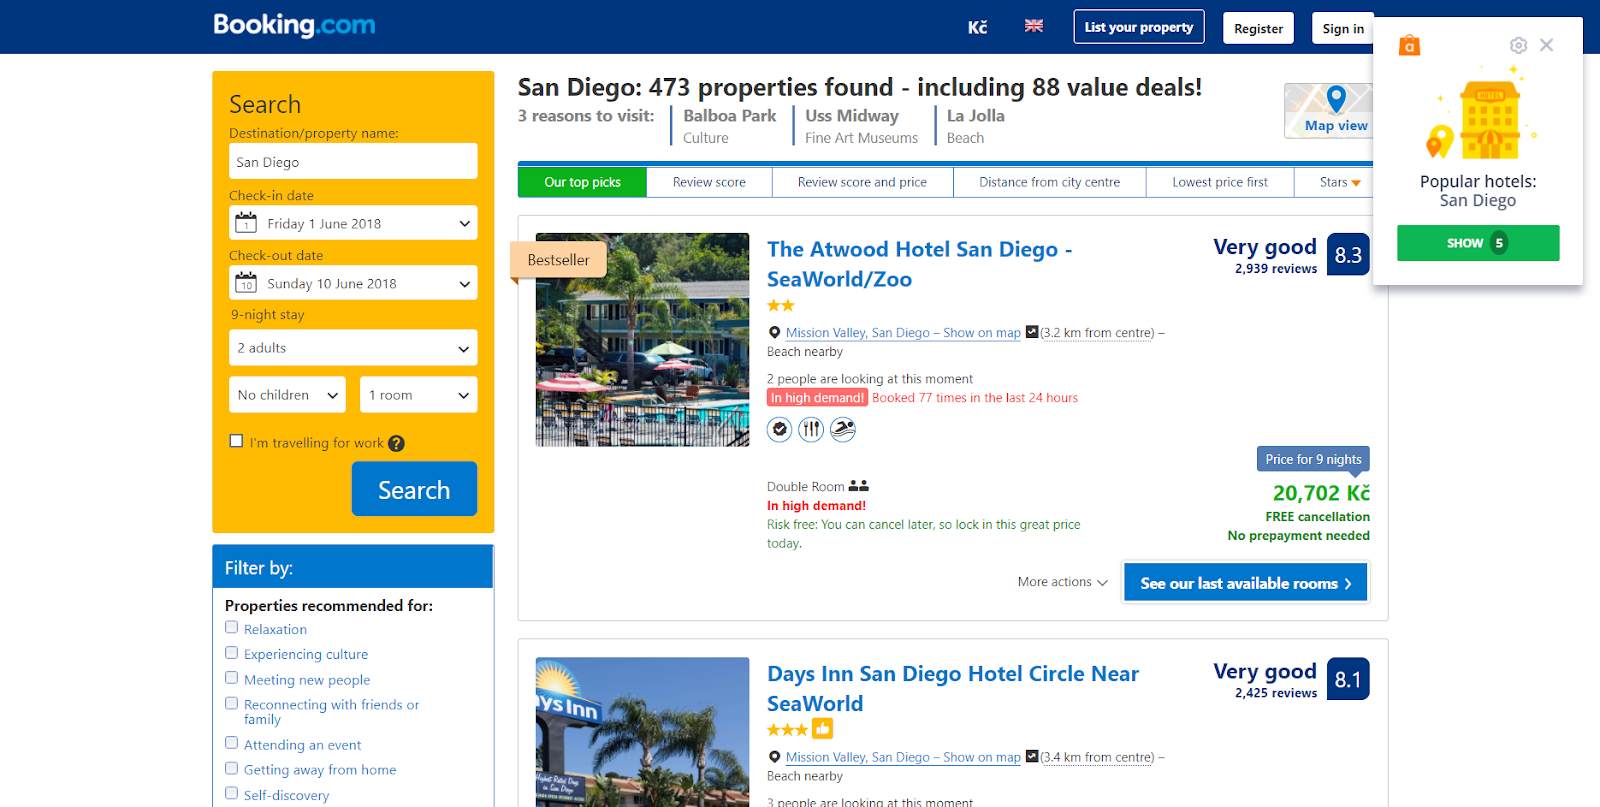 Safeprice-best-hotel-prices-1-1